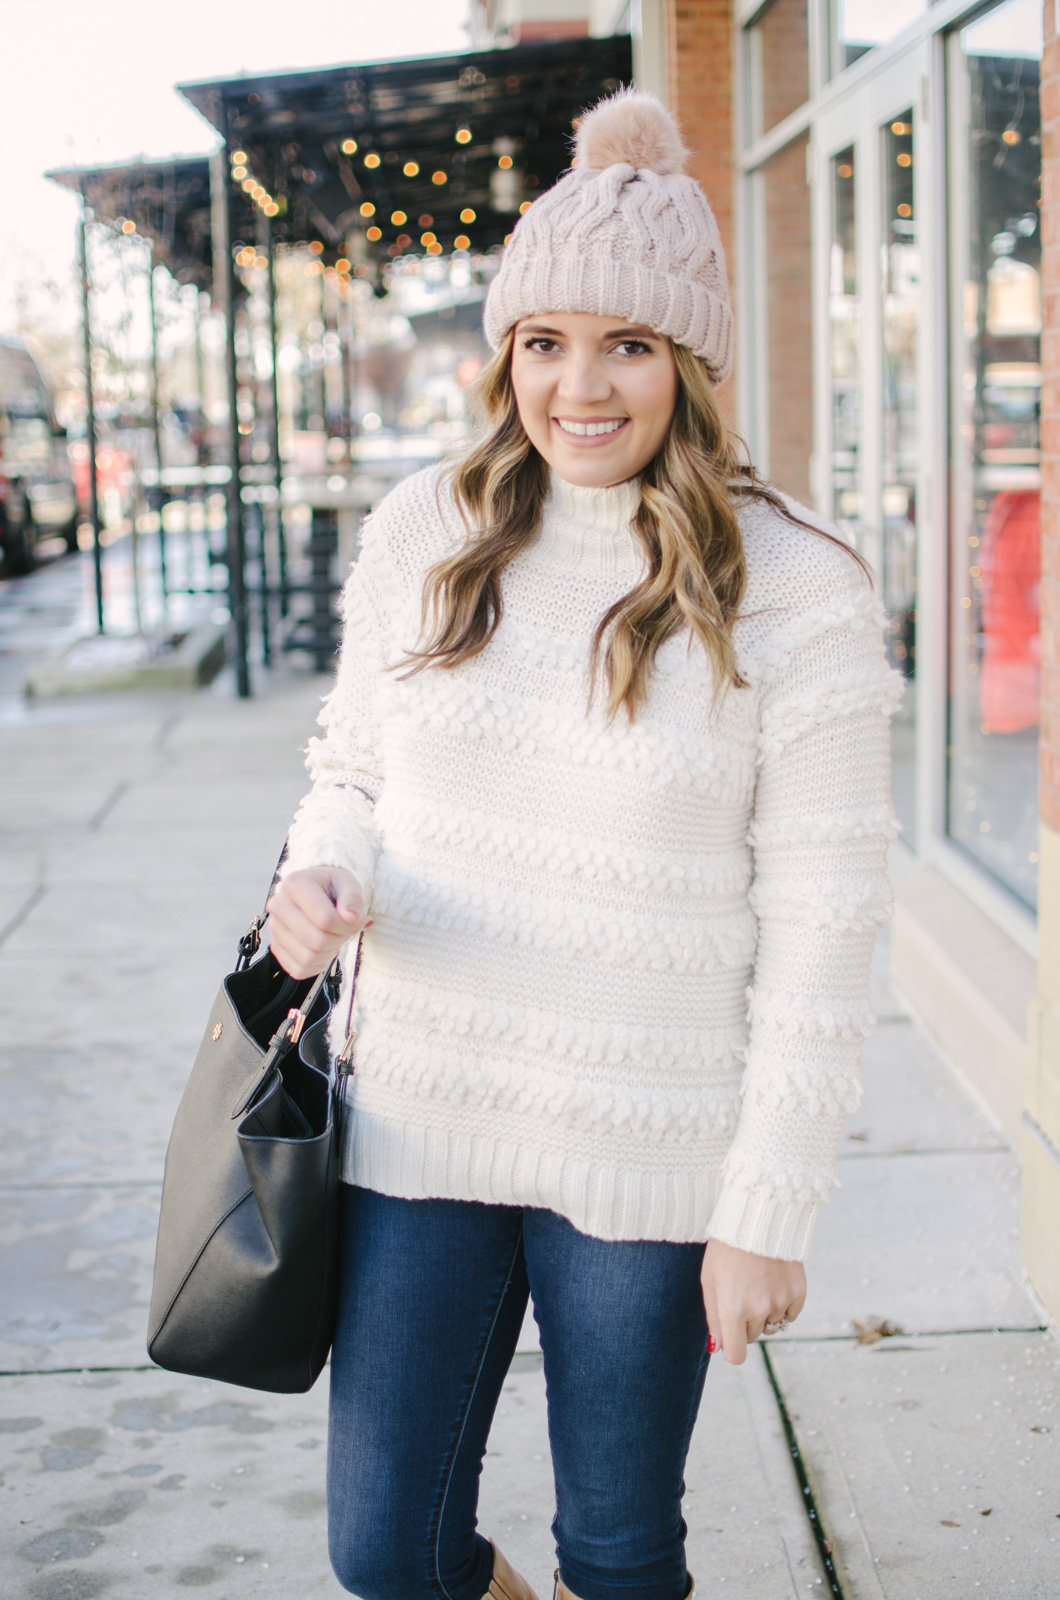 cream sweater outfit - the cutest textured sweater ever!! | Get all the outfit details and see more cute Winter outfits at bylaurenm.com!